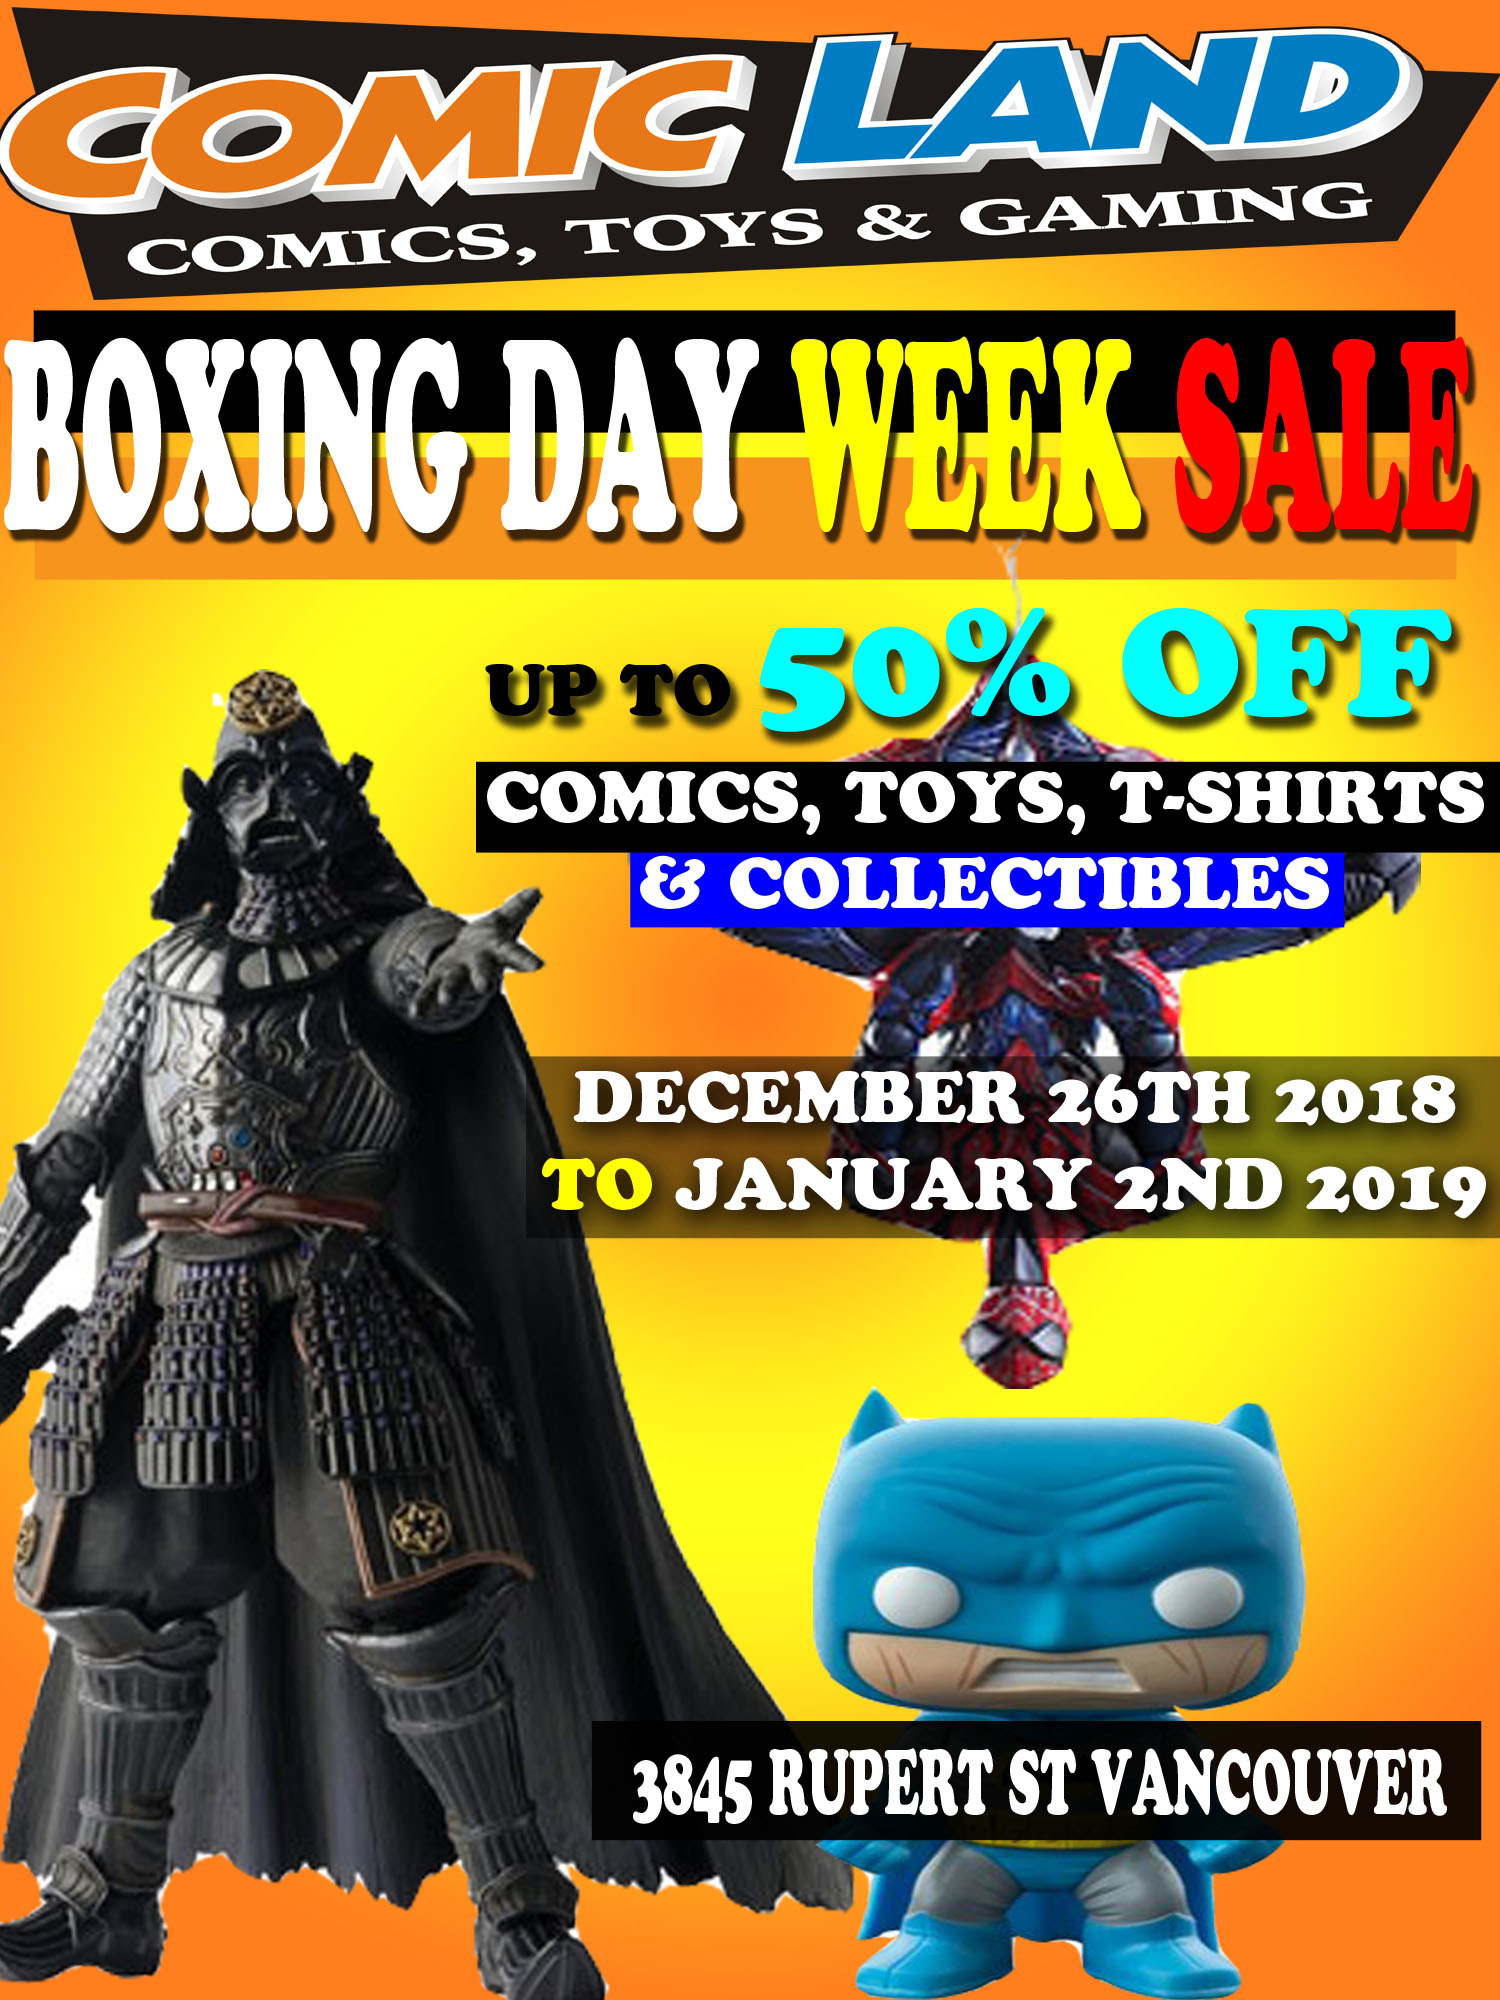 BOXING DAY WEEK SALE DECEMBER 26TH 2018 TO JANUARY 2ND 2019